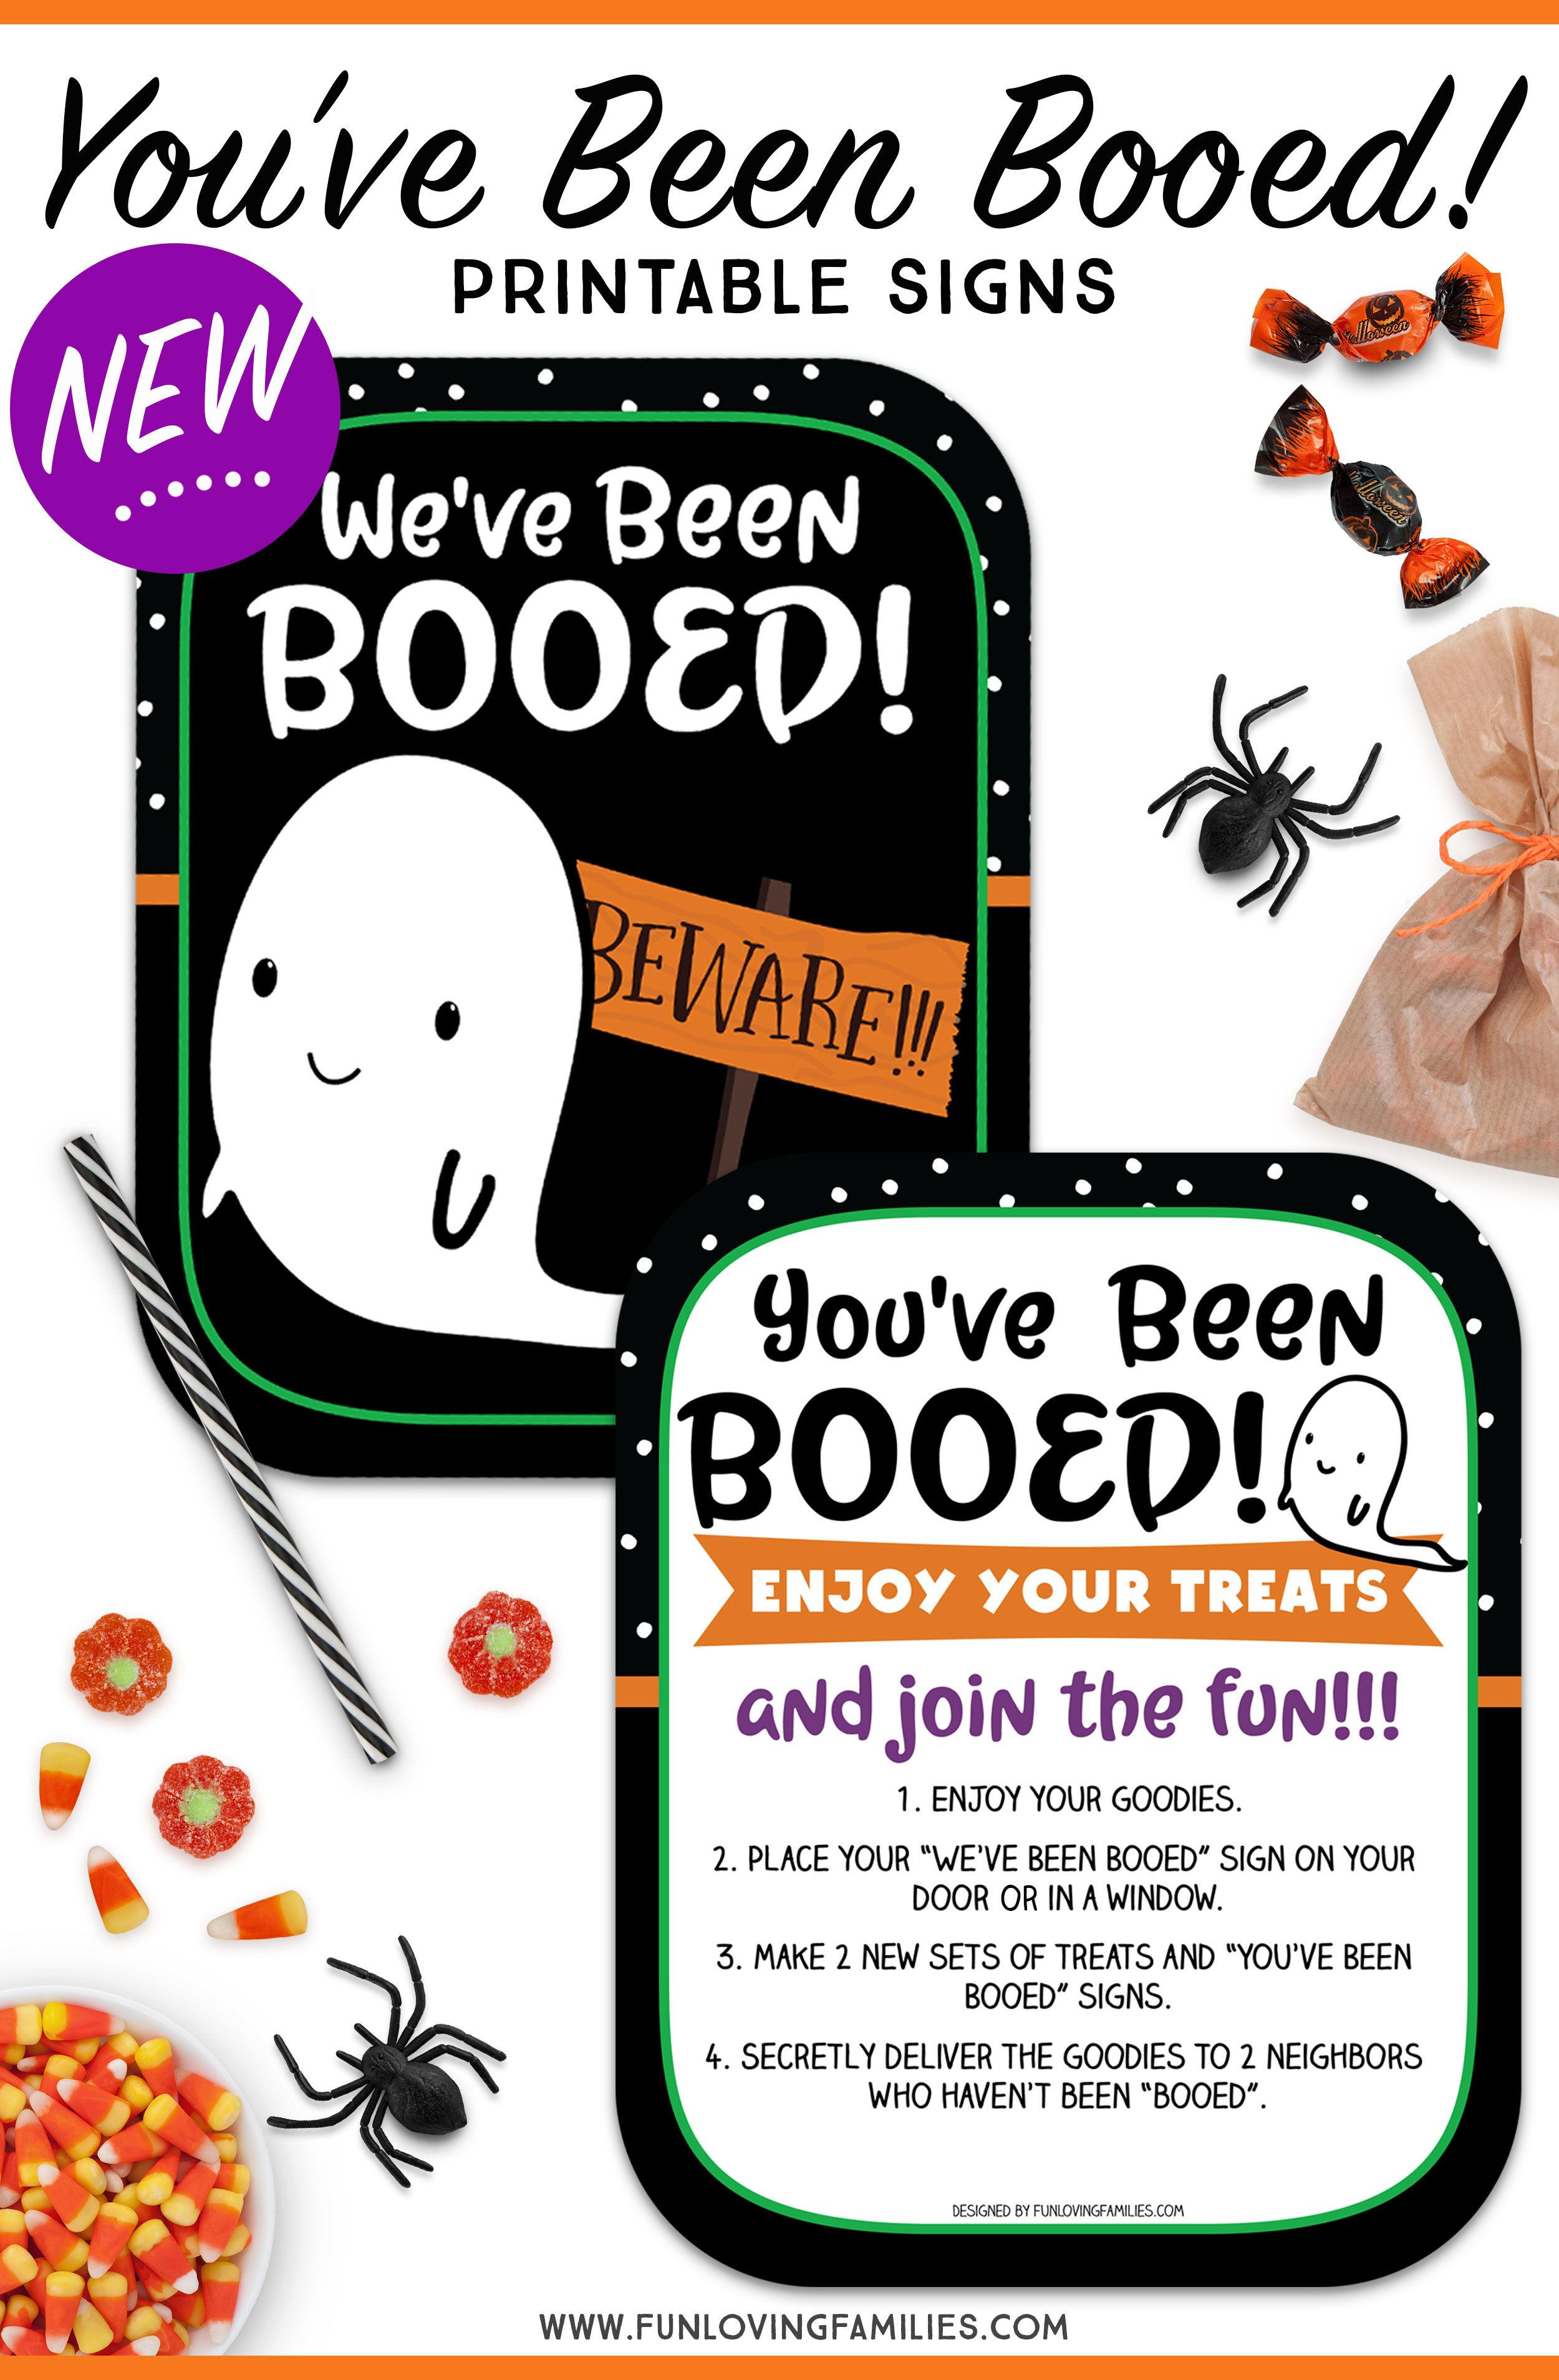 image about You Ve Been Booed Free Printable identify Youve Been Booed Printable Signs or symptoms - Tremendous Adorable and Extensively